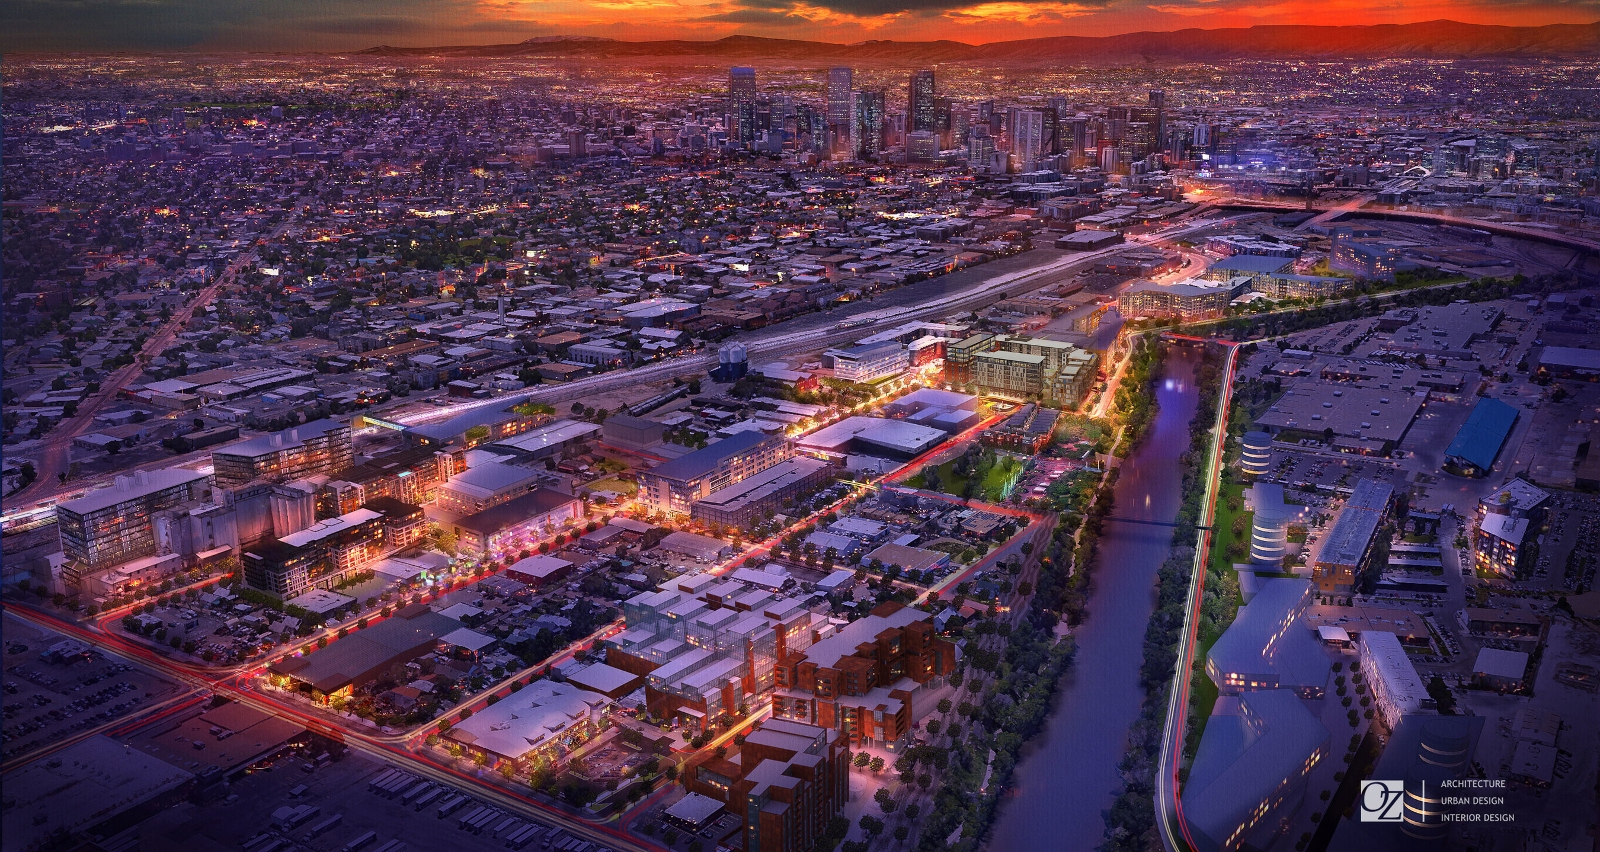 OZ Architecture's rendering of RiNo neighborhood's redevelopment by the year 2020.